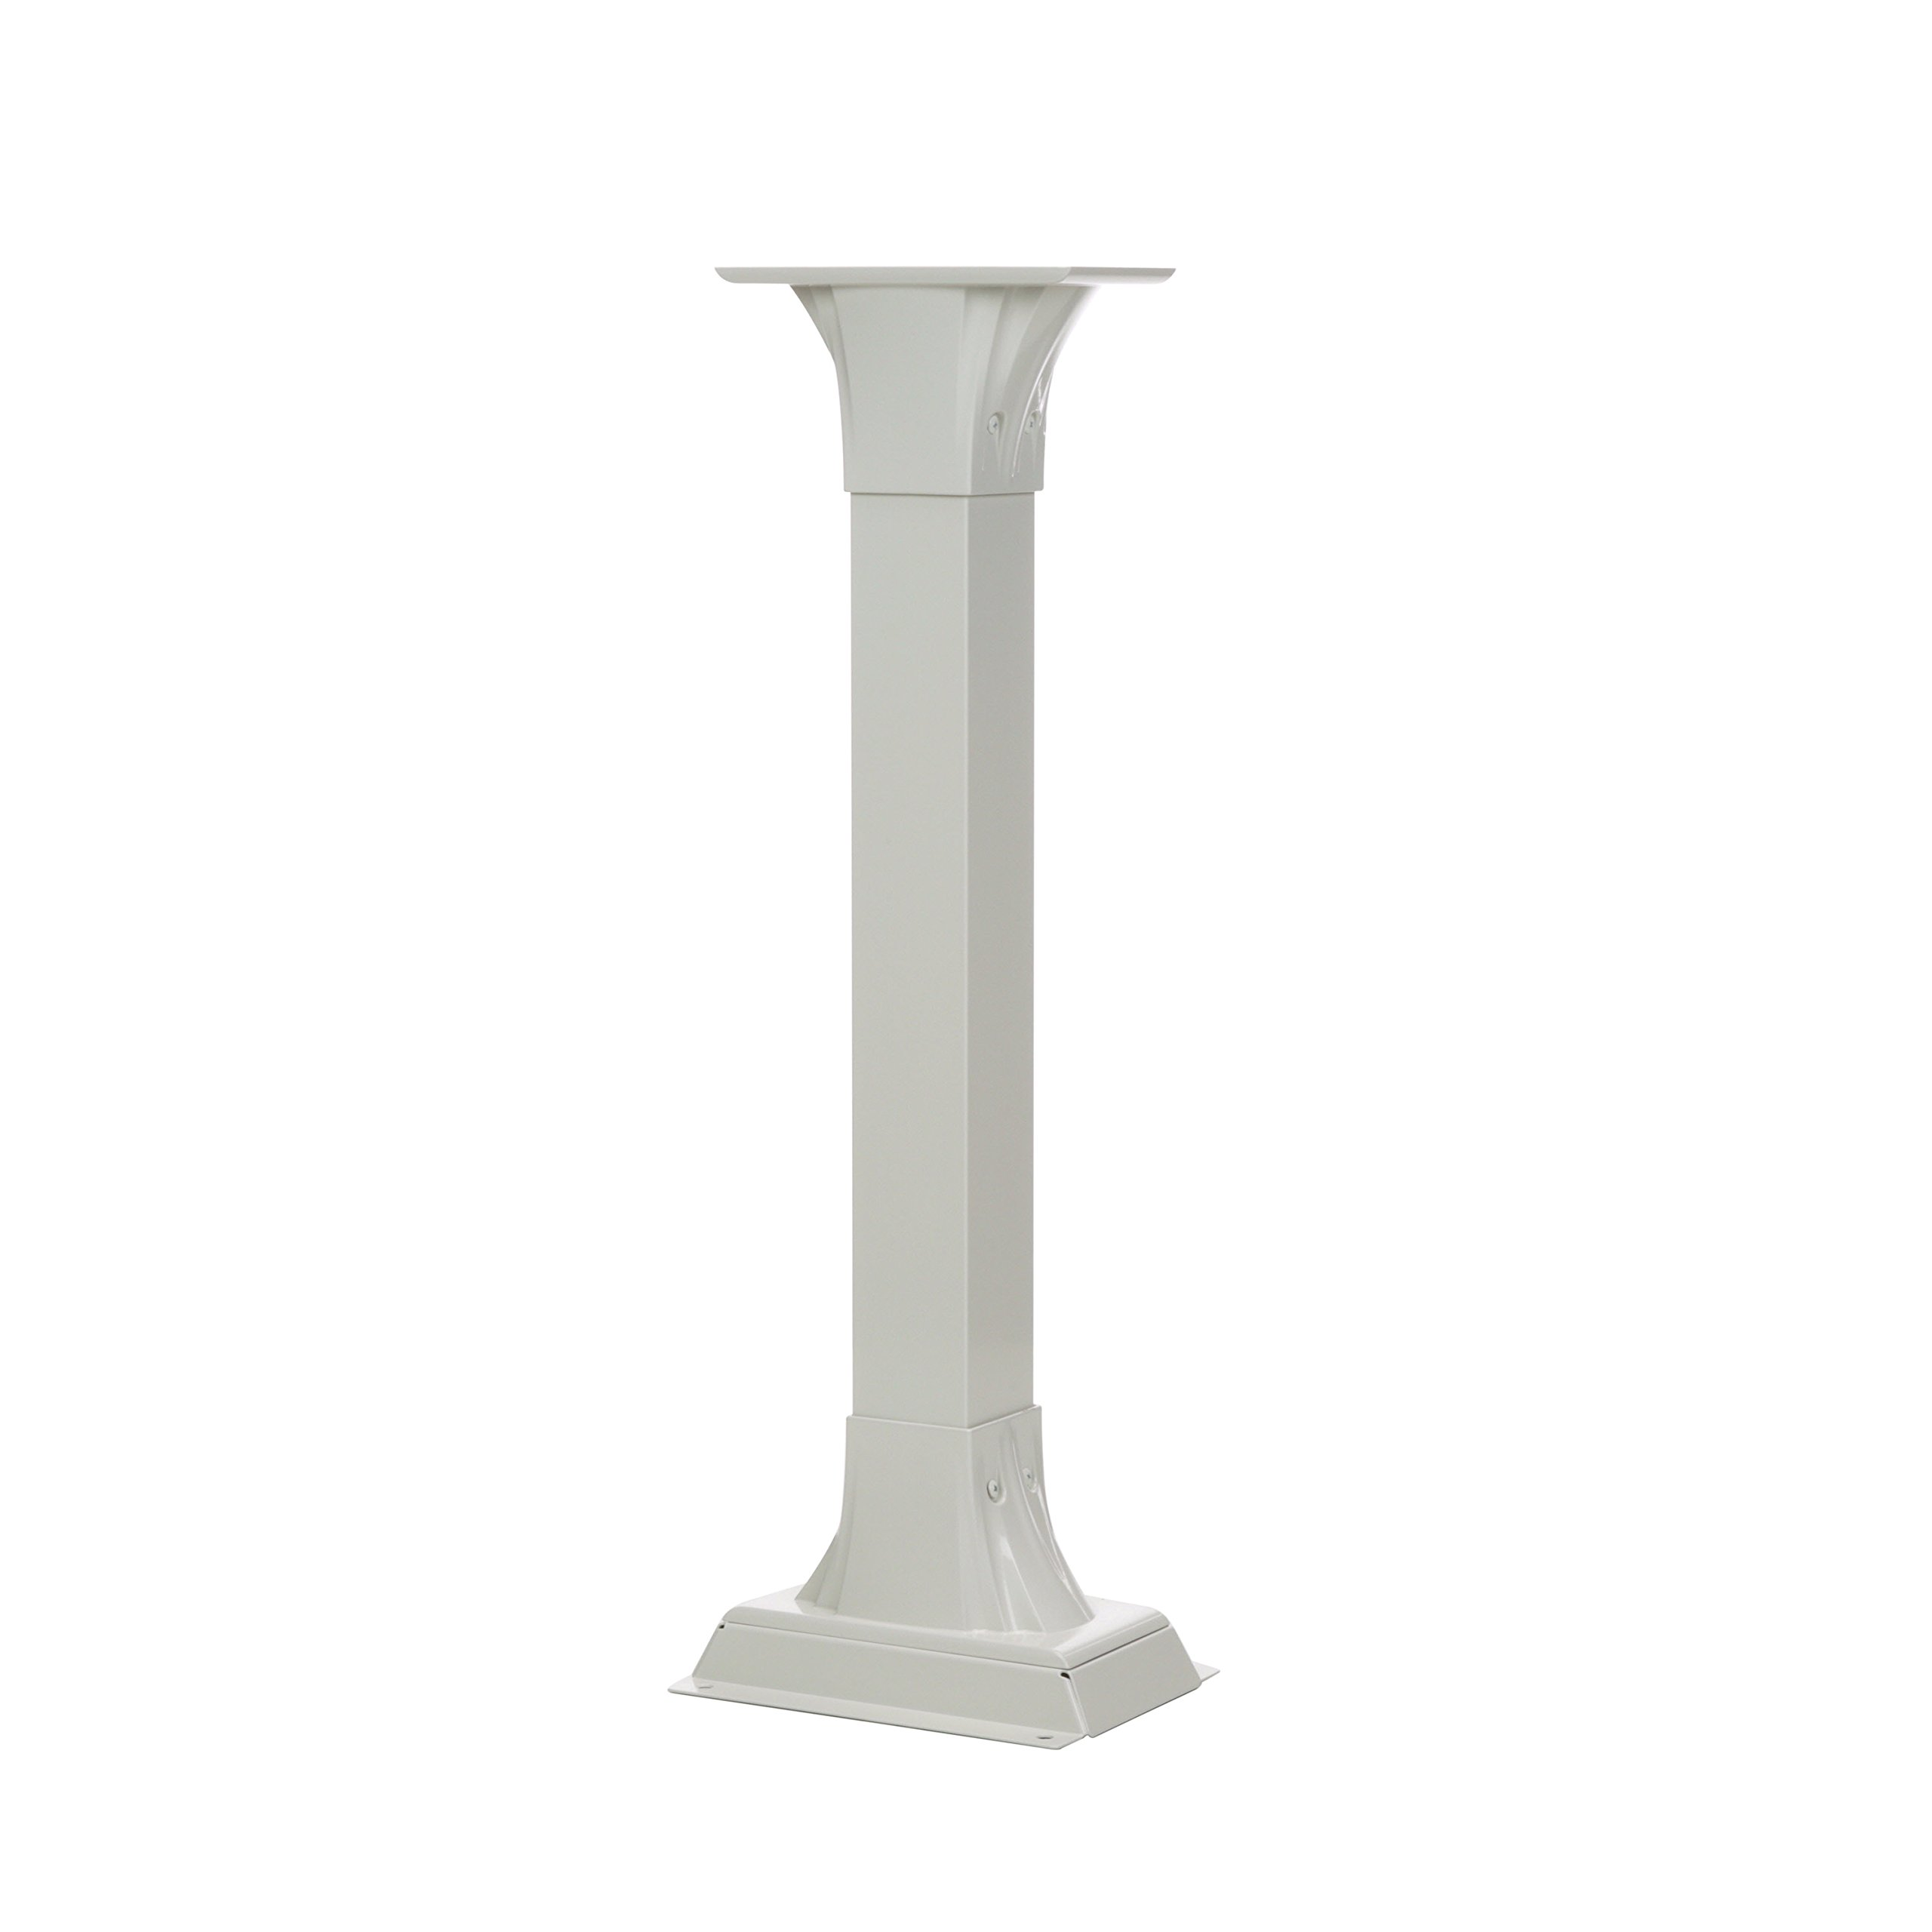 Gibraltar Mailboxes Callaway  Cast Aluminum White, Adjustable Mailbox Post, CP000W00